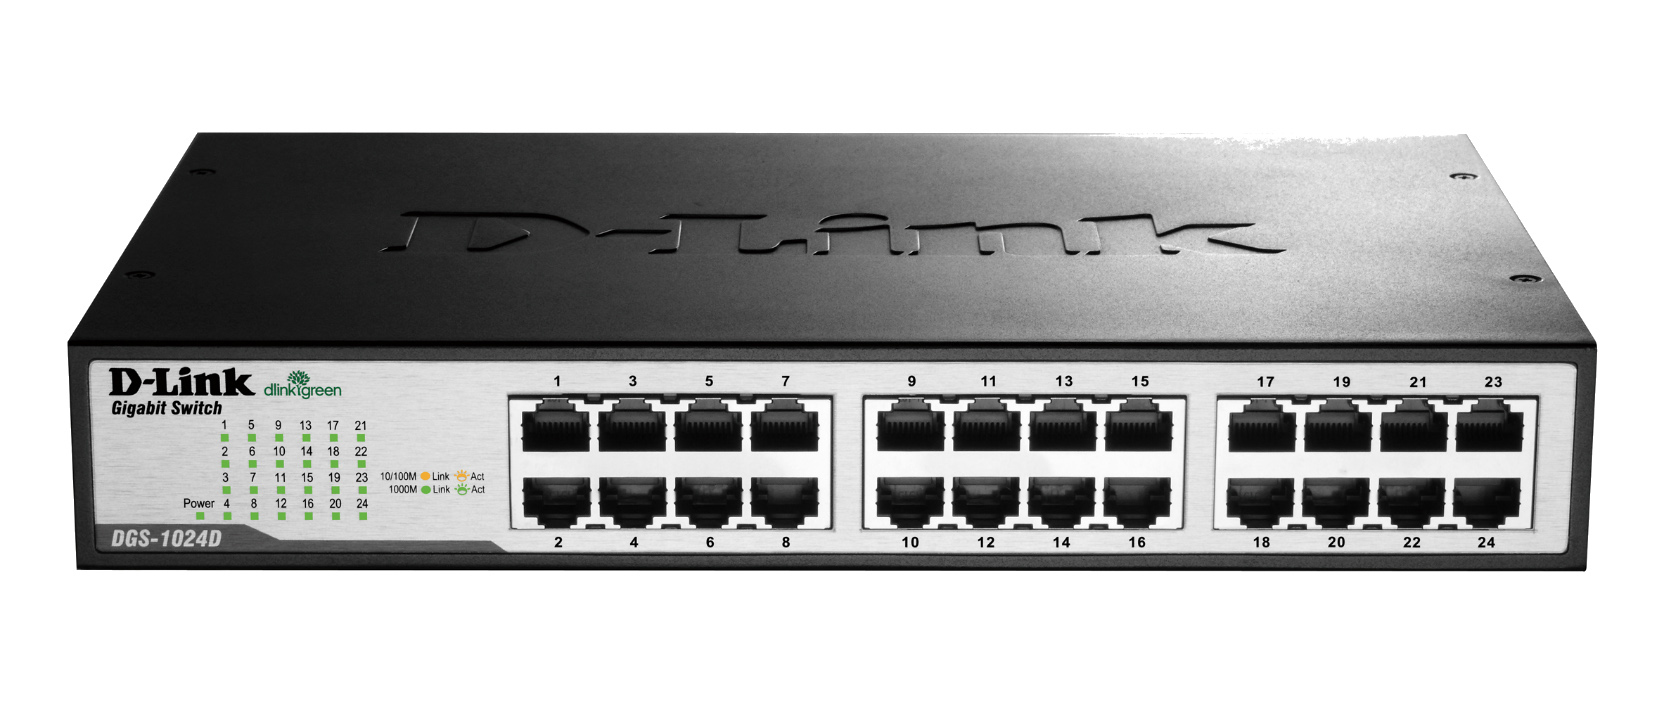 D-Link DGS-1024D Unmanaged network switch